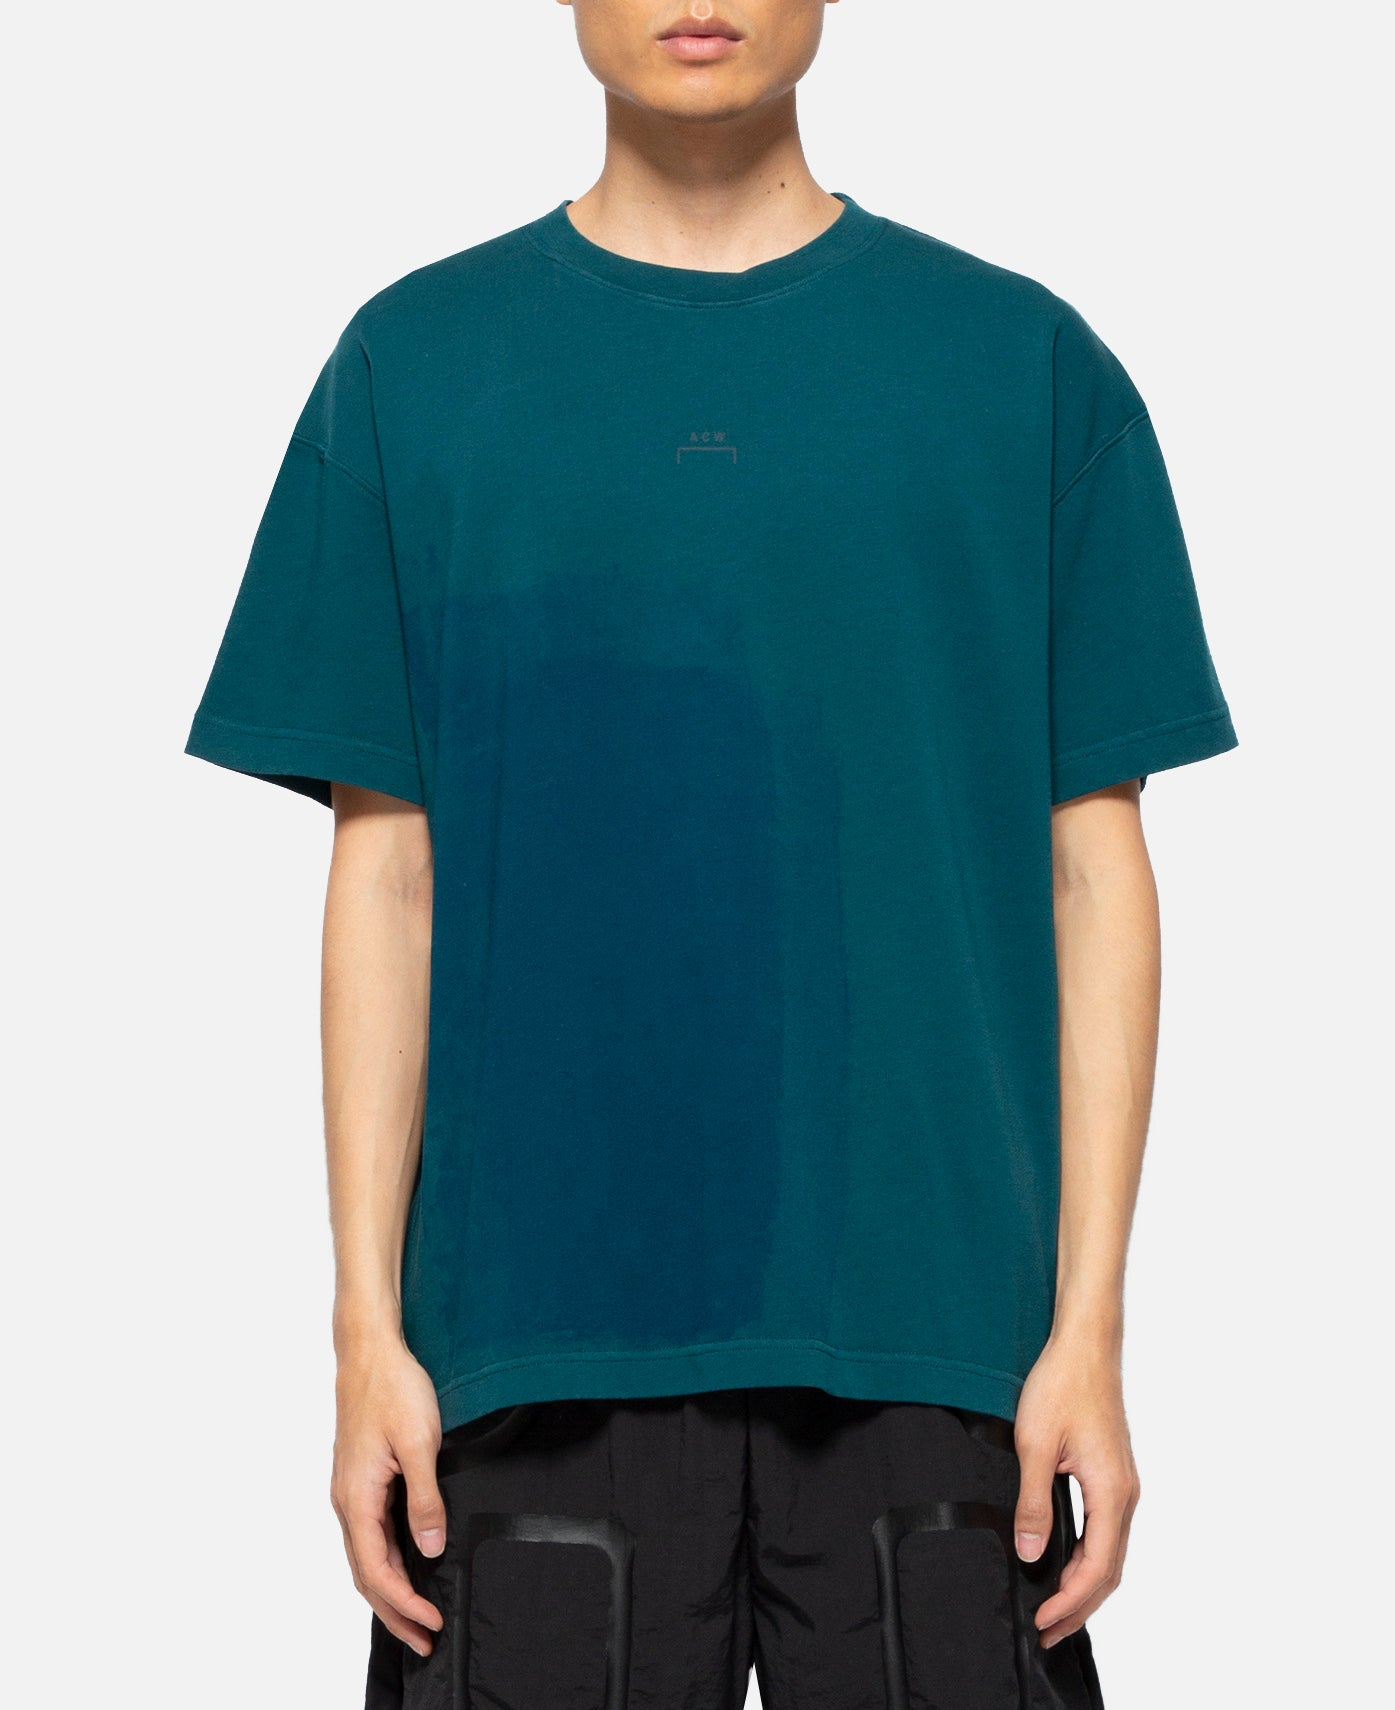 Painted T-Shirt (Green)